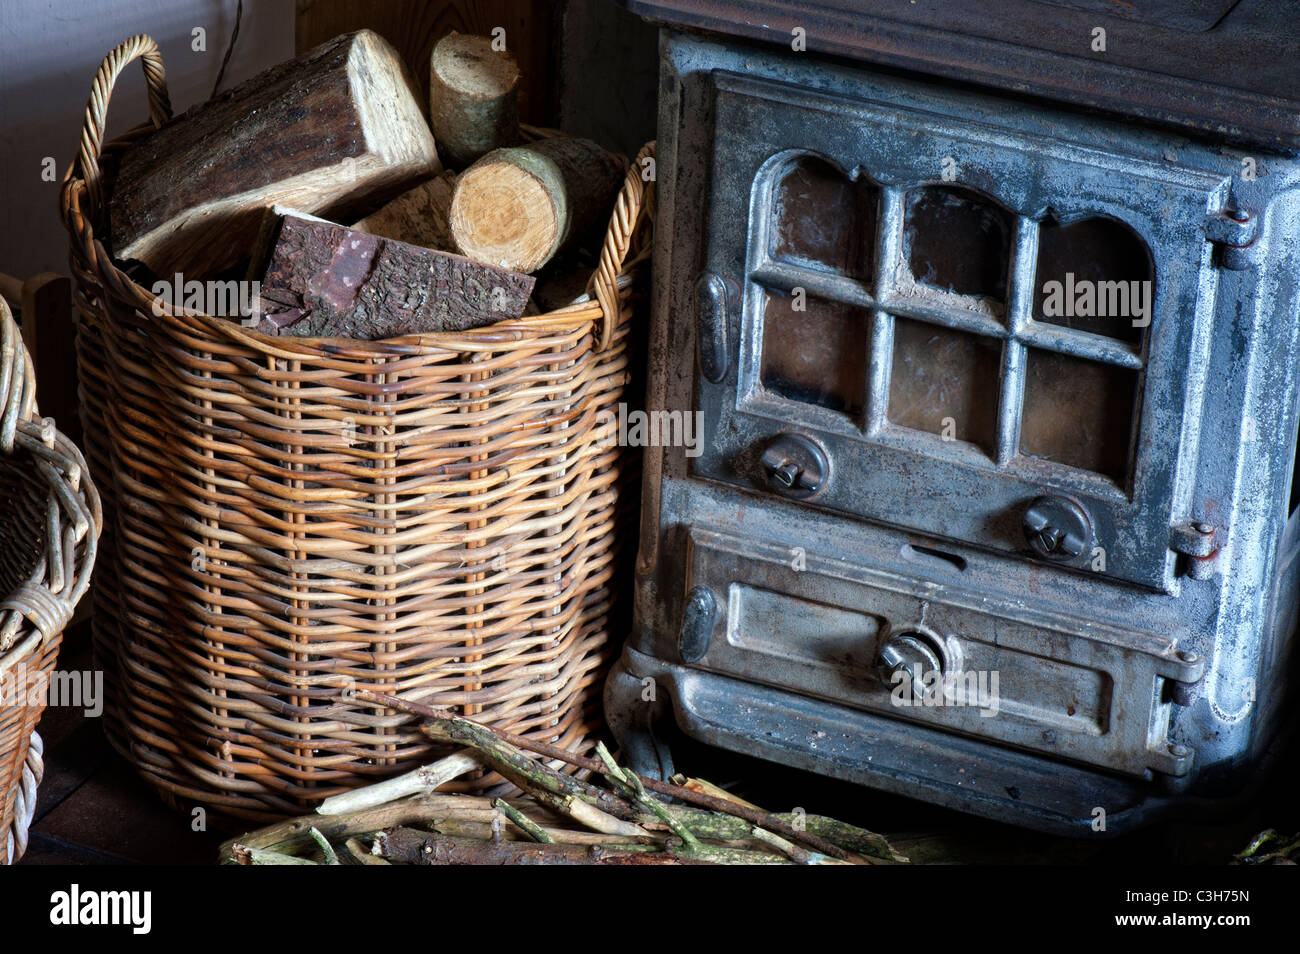 Woodburning stove and a basket of logs inside a country cottage. UK - Stock Image